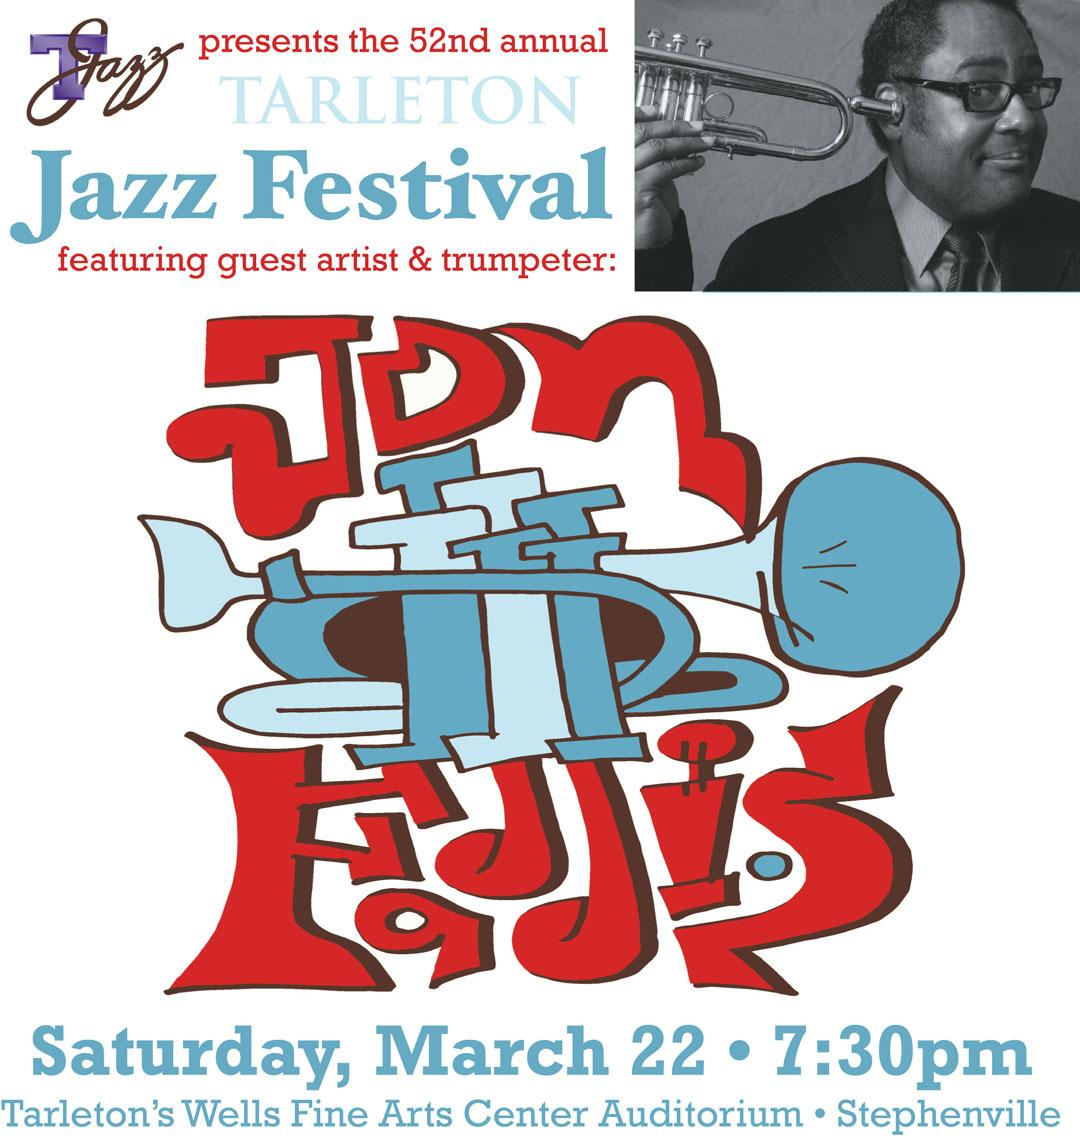 52nd Annual Tarleton Jazz Festival